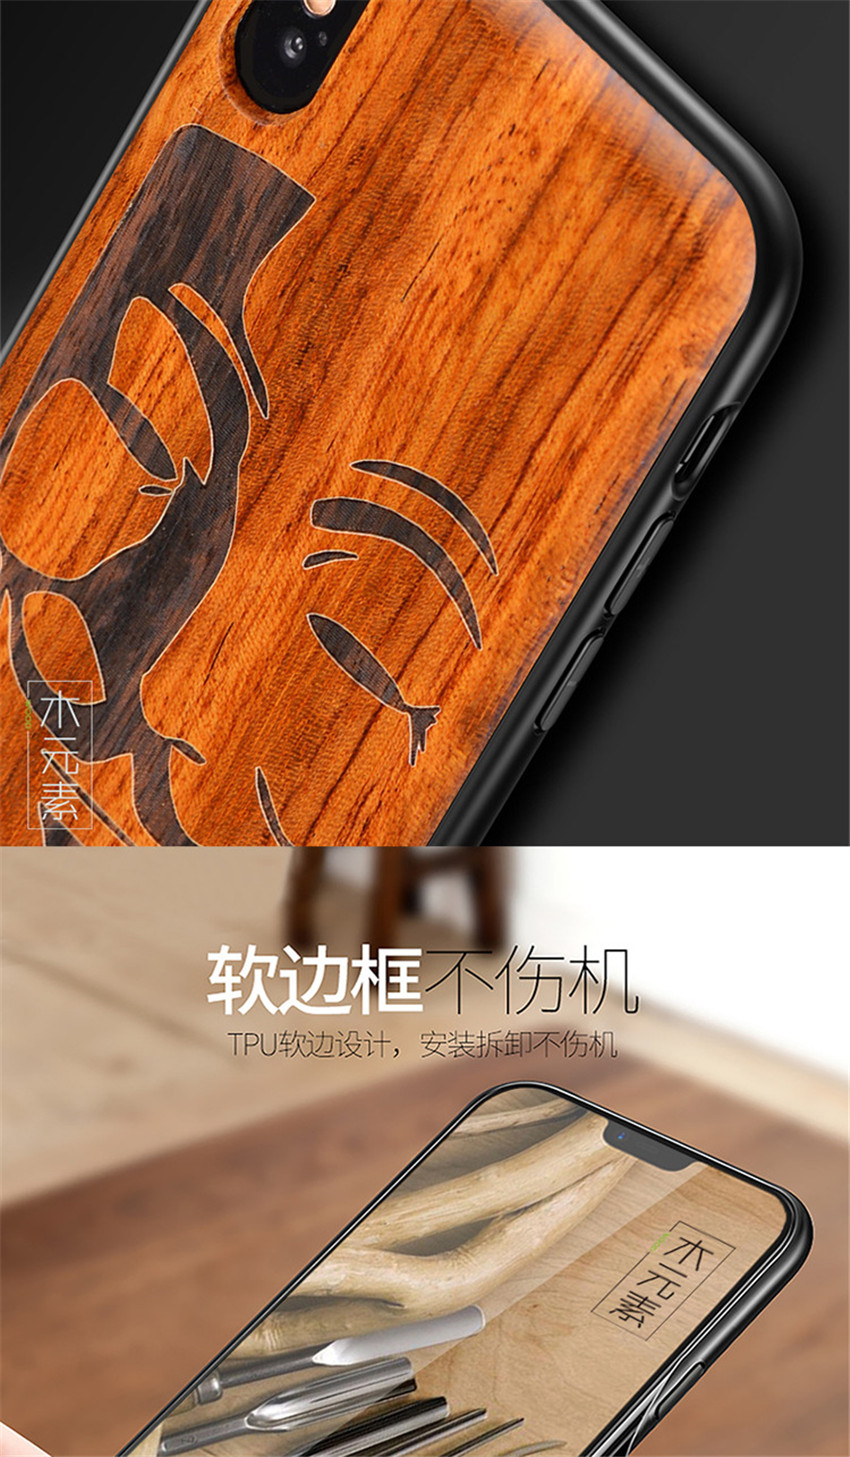 2018 New For iPhone XS Max Case Slim Wood Back Cover TPU Bumper Case For iPhone X iPhone XS Phone Cases (5)